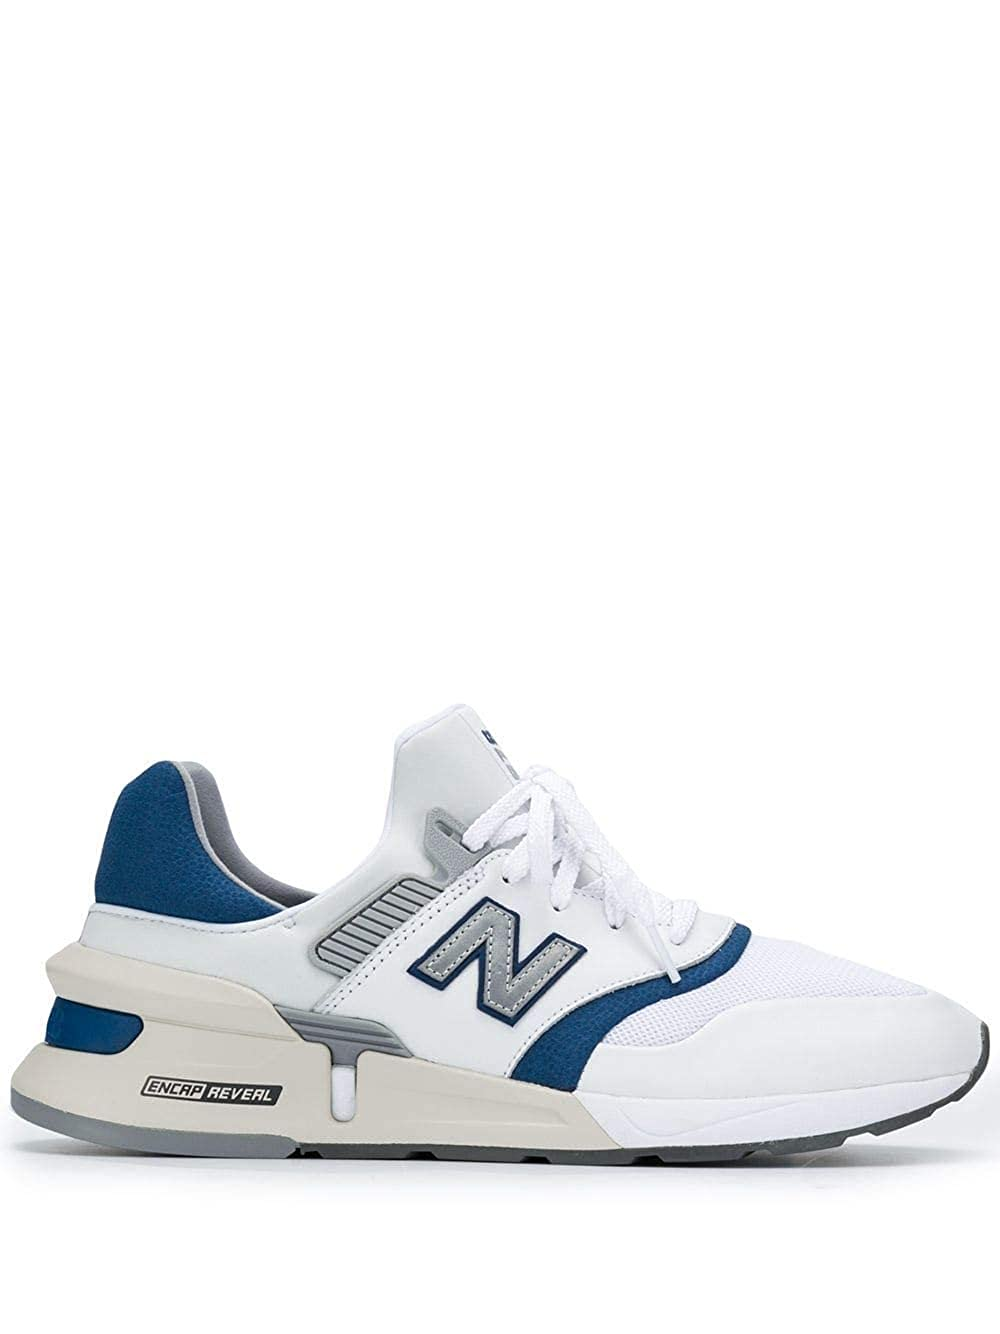 Luxury Fashion | New Balance Hombre NBMS997HGDD12 Blanco ...